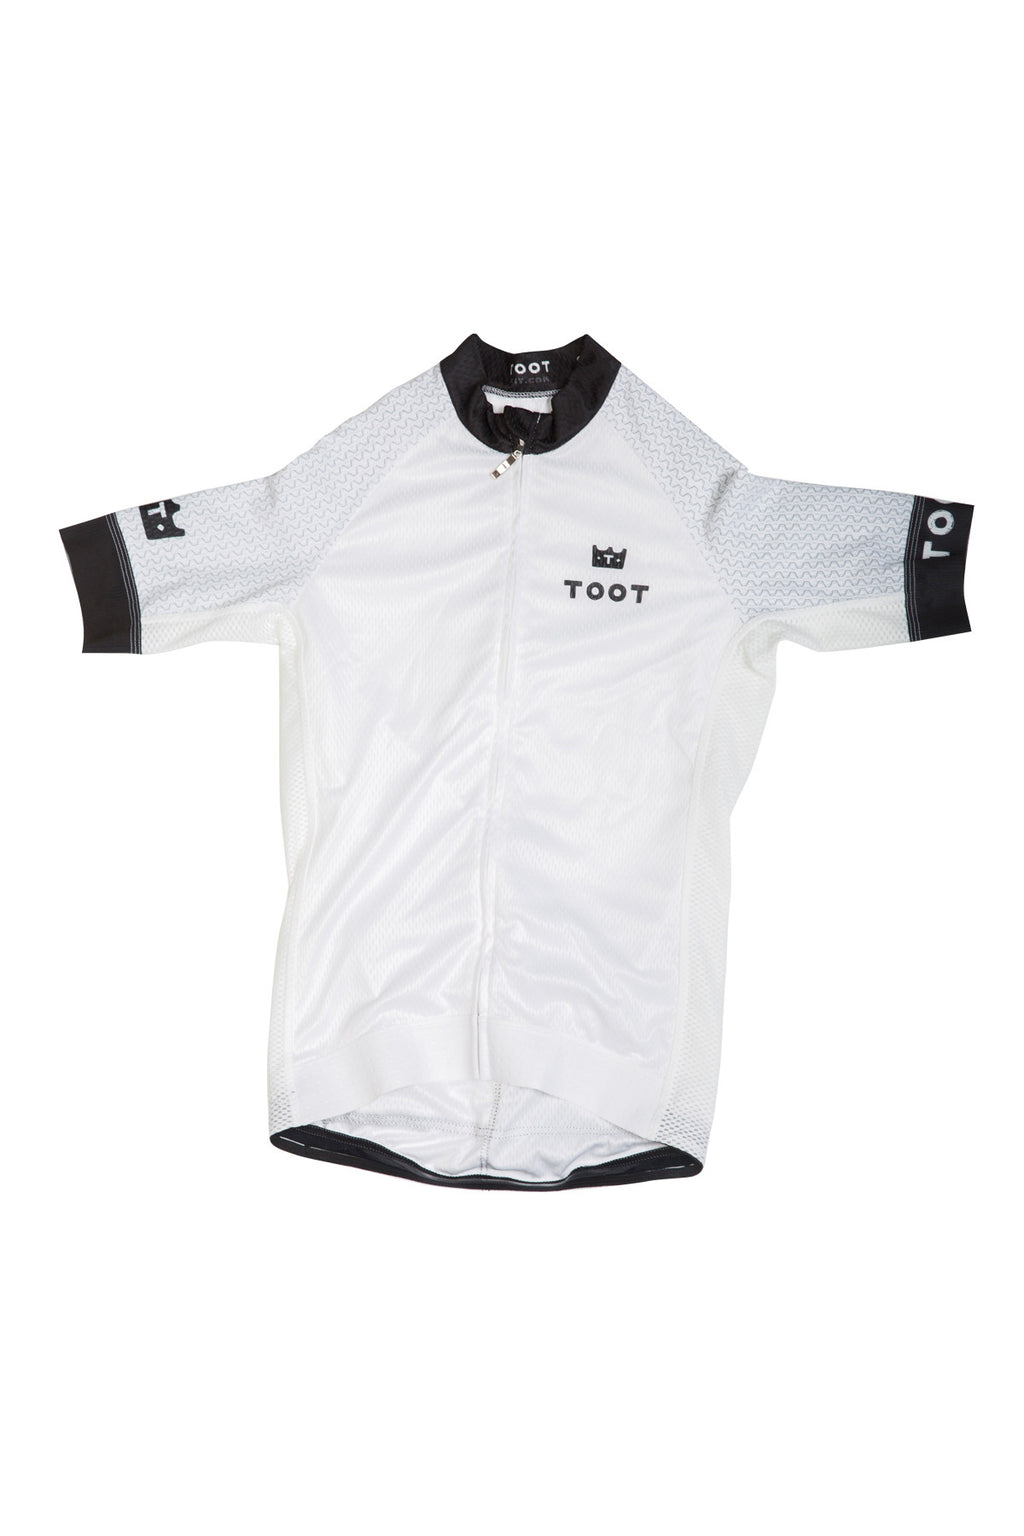 White Womens Cycling Jersey TOOT Doodles